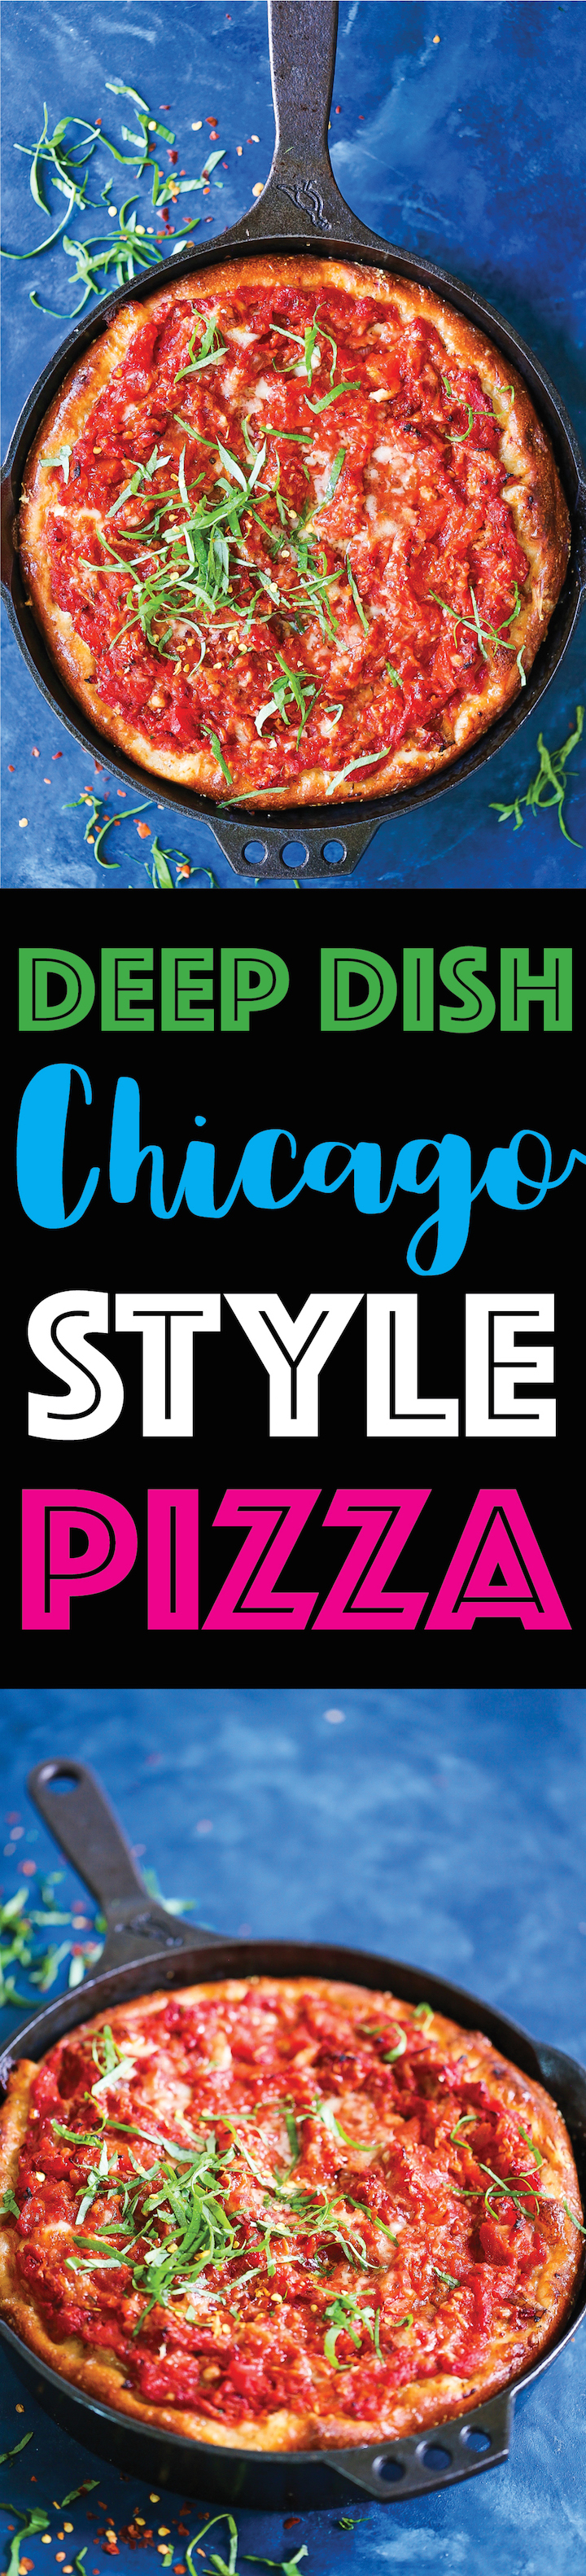 Deep Dish Chicago Style Pizza - Now you don't have to go all the way to Chicago for a deep dish pizza! The crust is perfectly golden brown, the chunky tomato sauce is completely homemade, and a fresh layer of ooey gooey mozzarella cheese is simply the best combination ever!